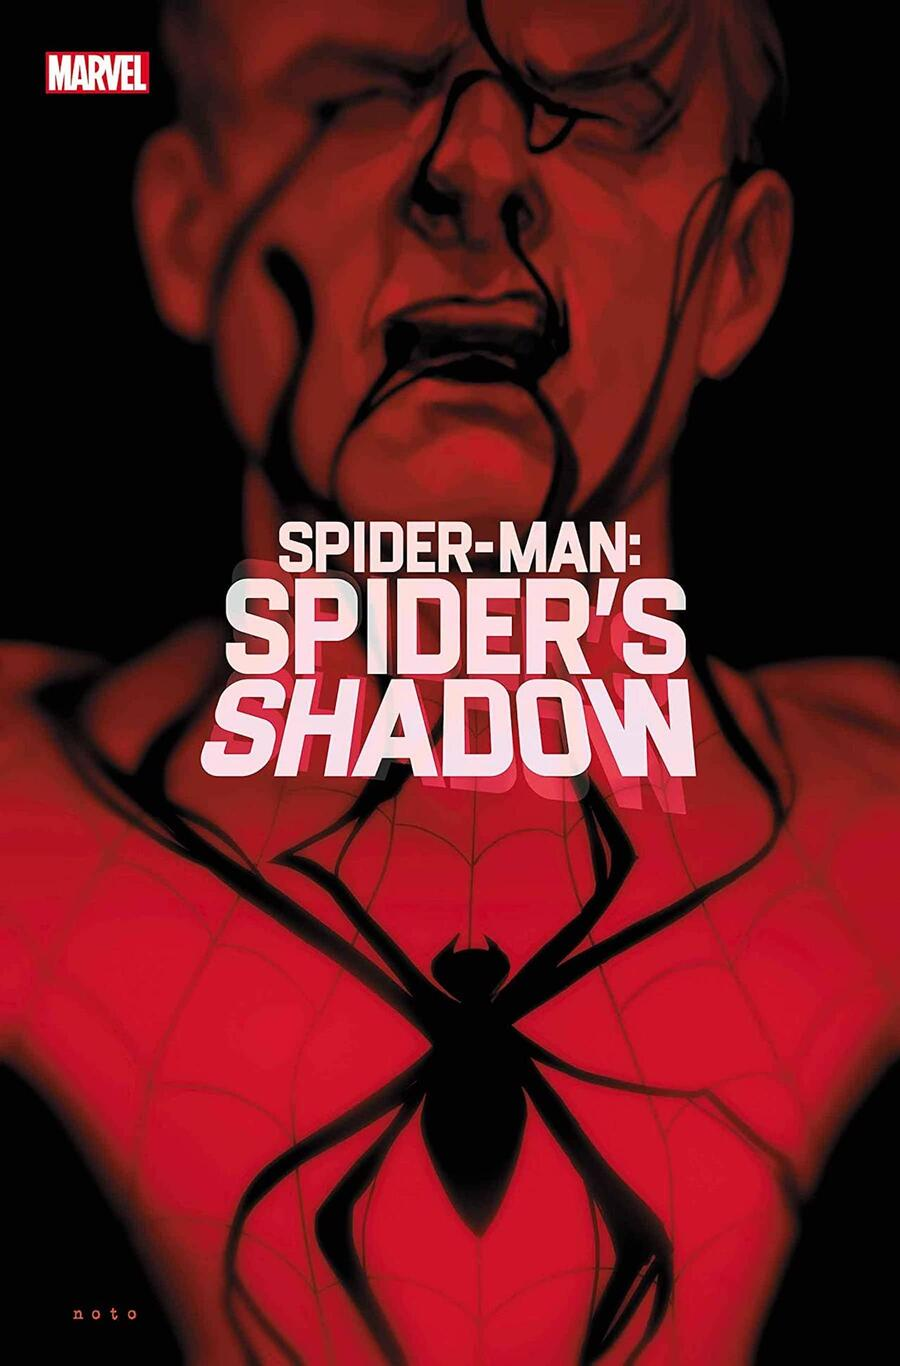 Spider-Man: The Spider's Shadow (2021-) #1 cover by Phil Noto